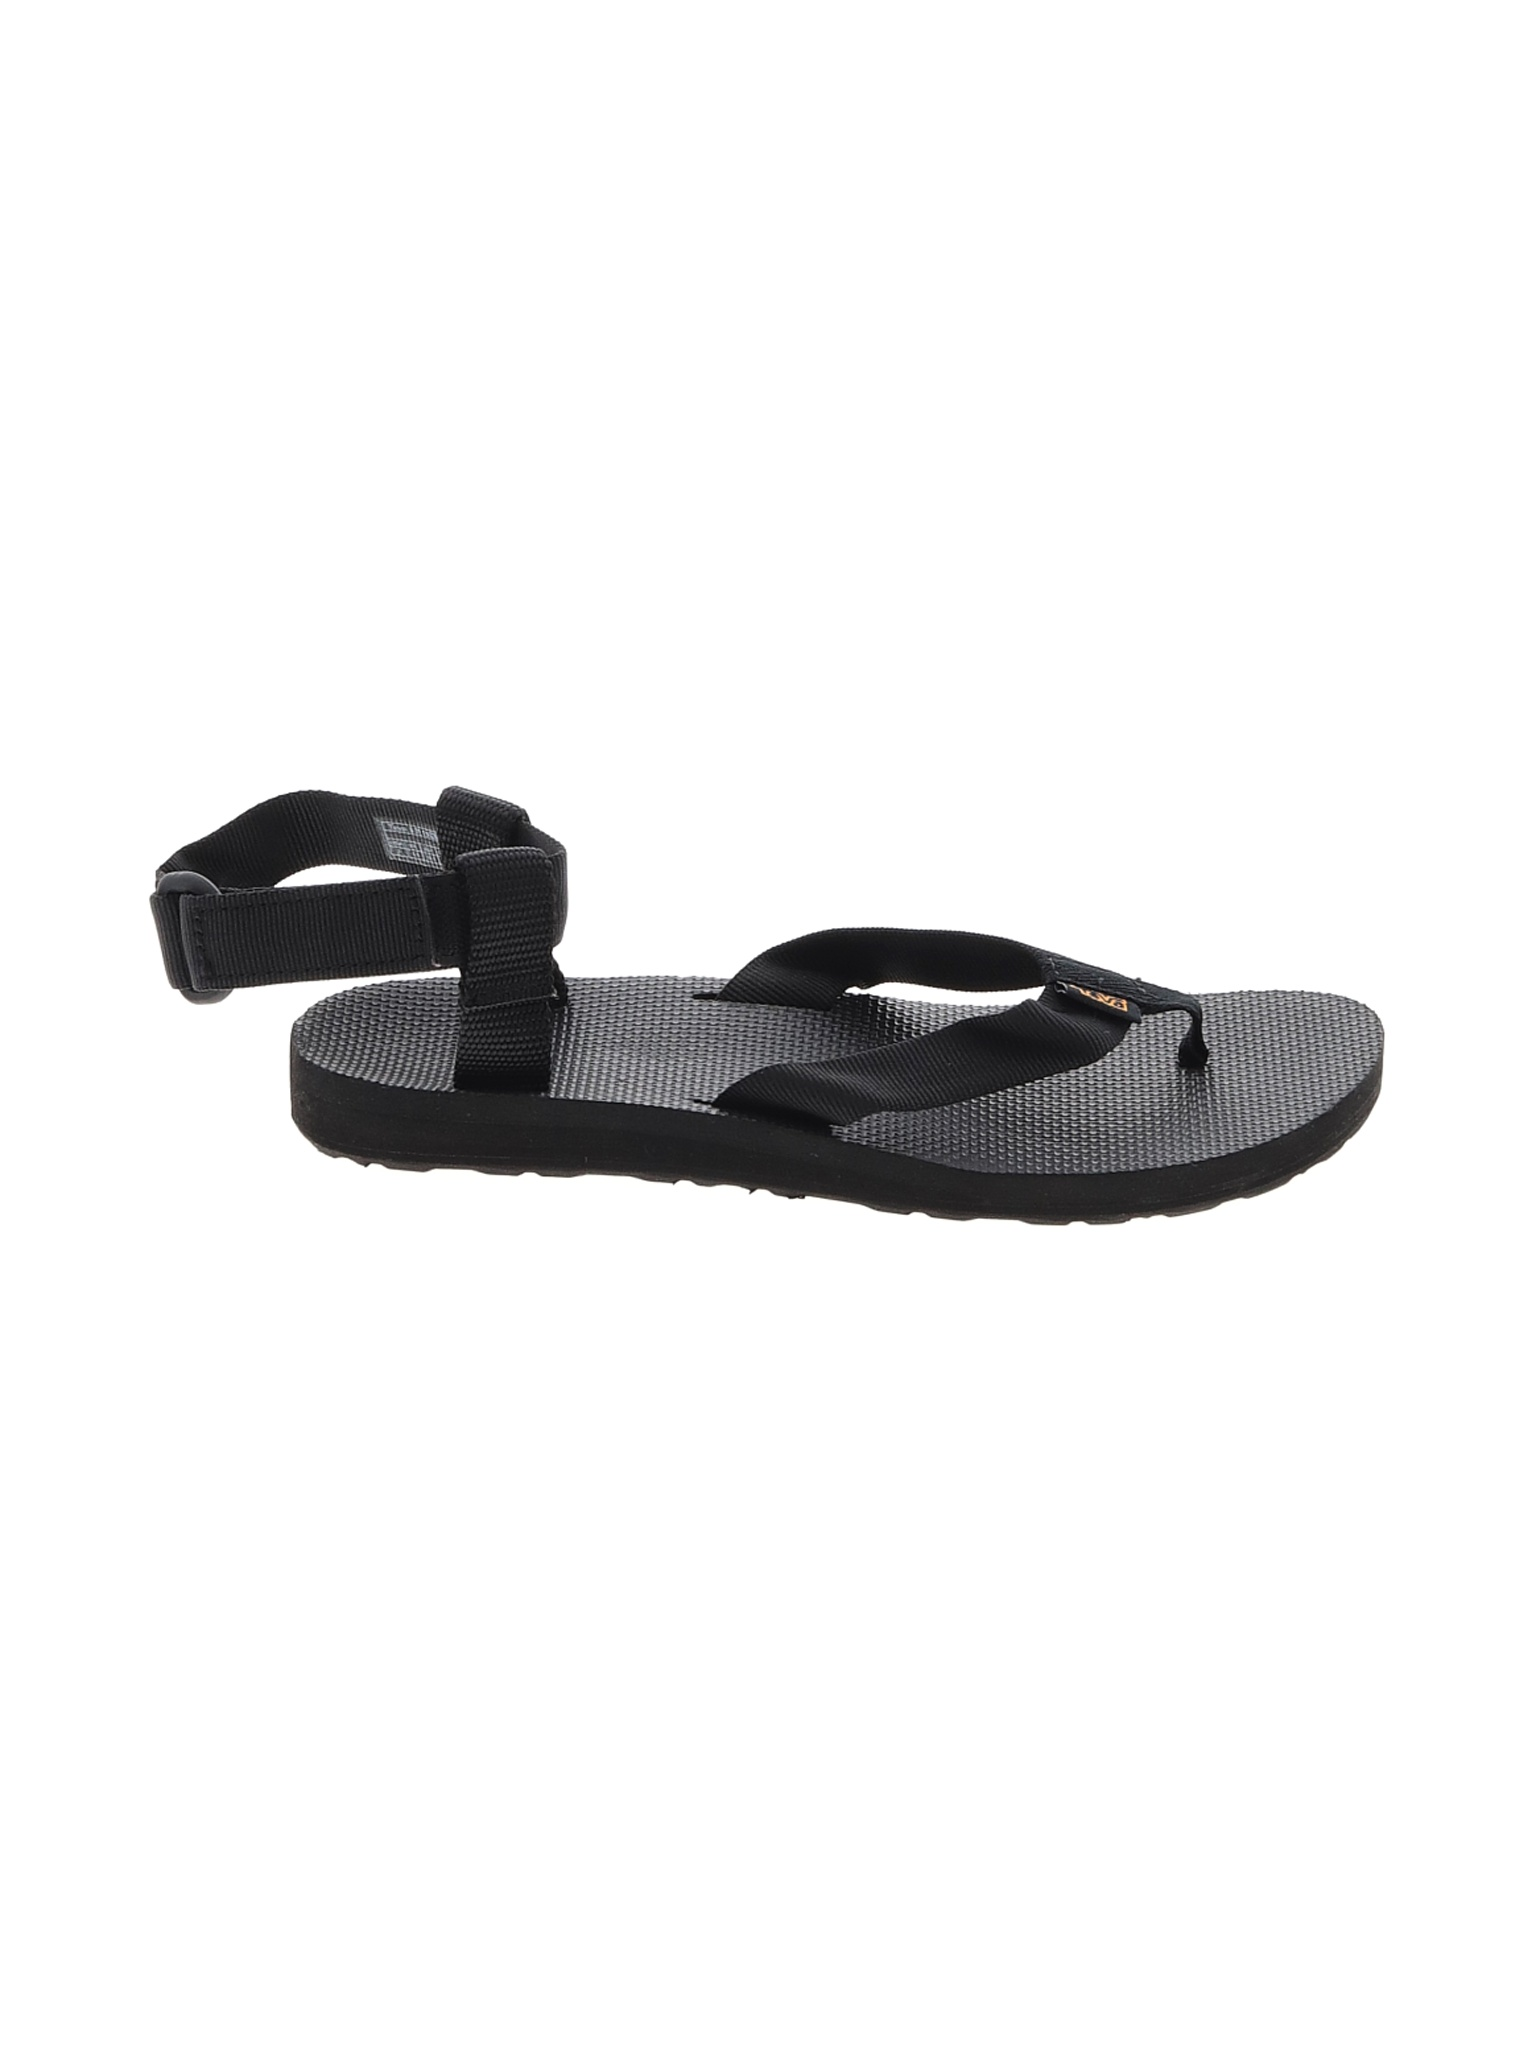 Pre-Owned Teva Women's Size 6 Sandals